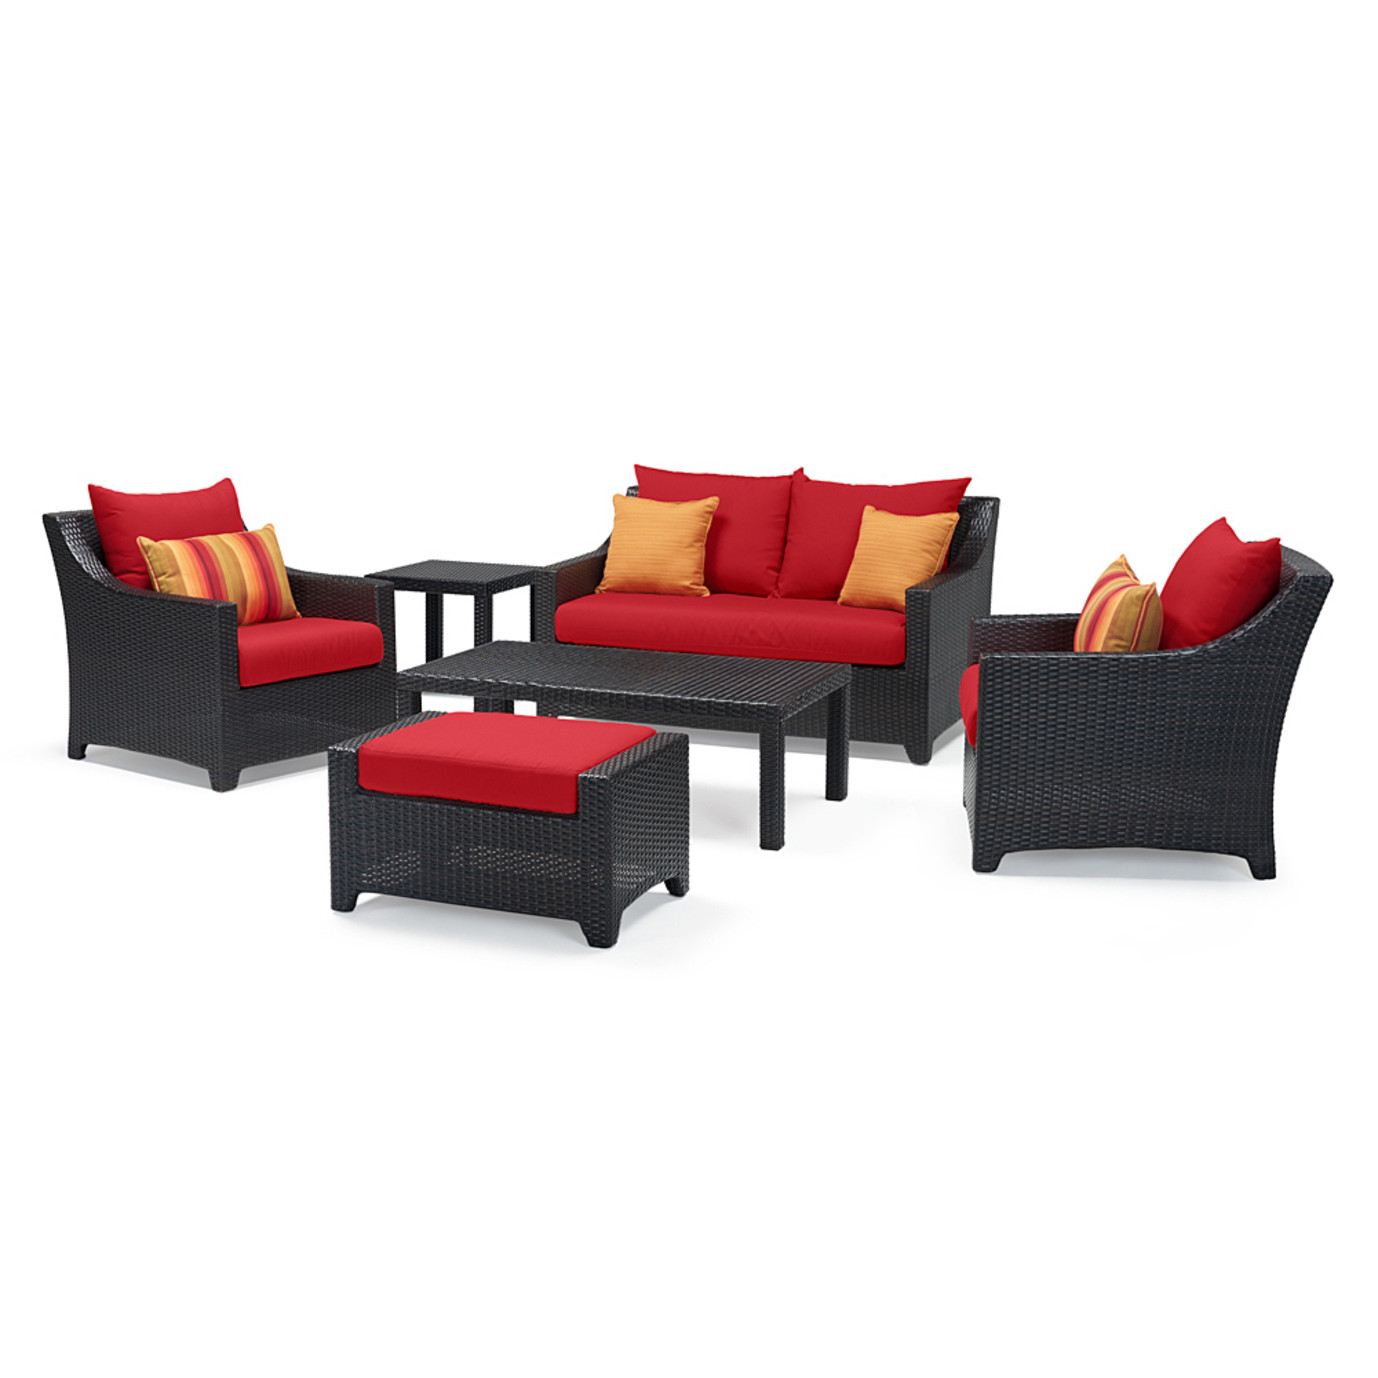 Deco™ 6pc Love & Club Seating Set - Sunset Red